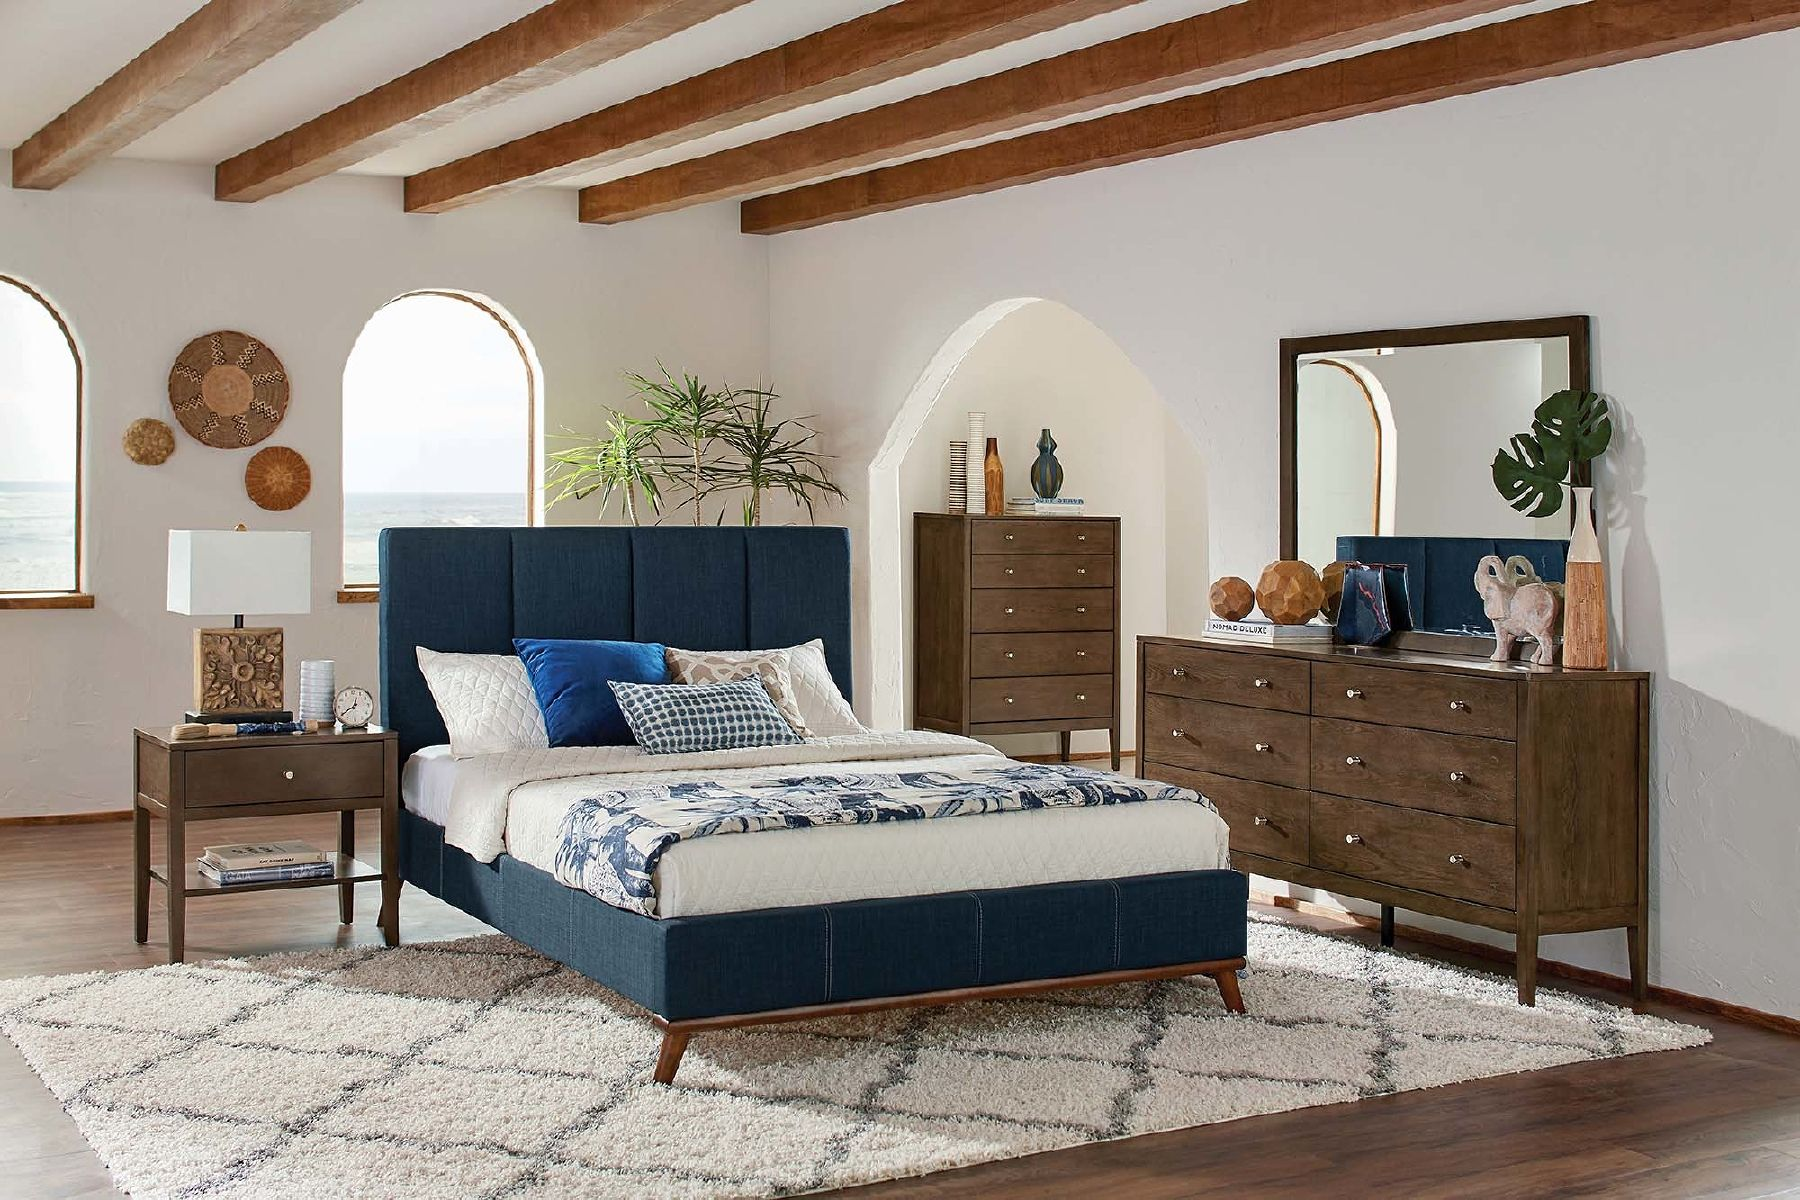 Charity Full Size Bed 300626f Coaster Furniture Full Size Beds Bedroom Sets Queen Upholstered Bedroom Upholstered Full Bed Download coaster bedroom furniture